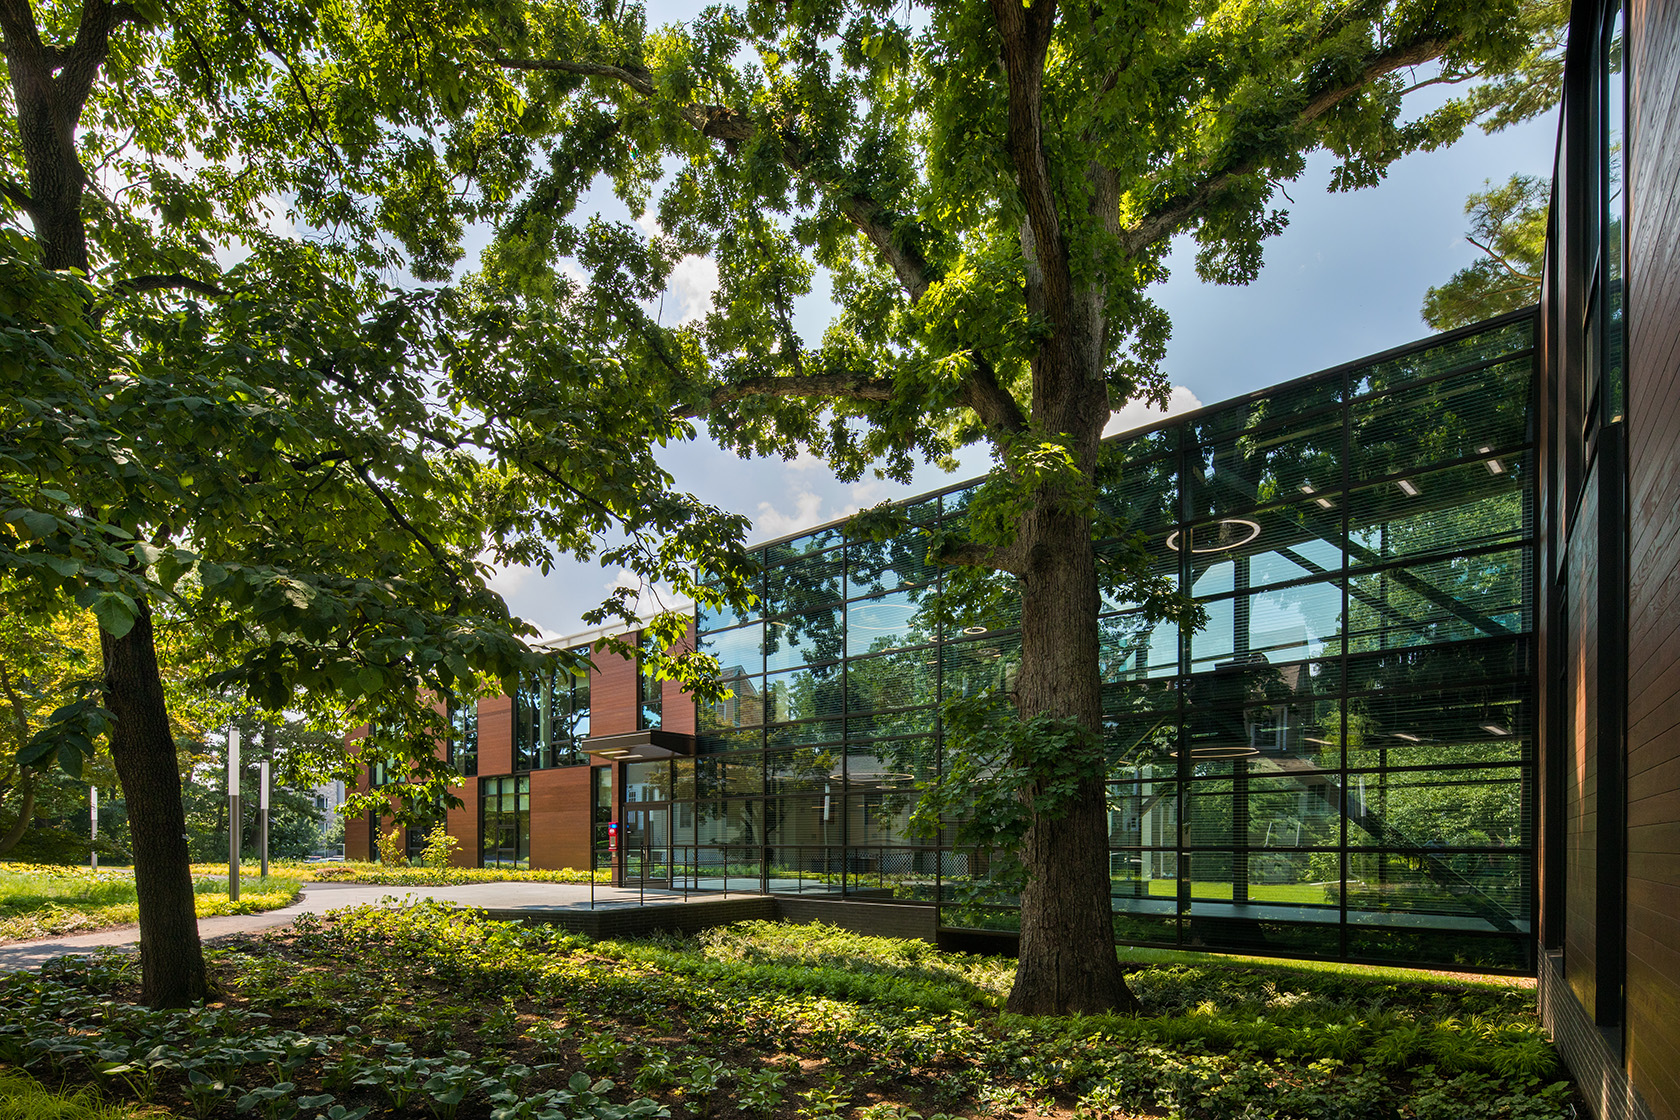 JacobsWyper Architect's new academic building for Swarthmore College